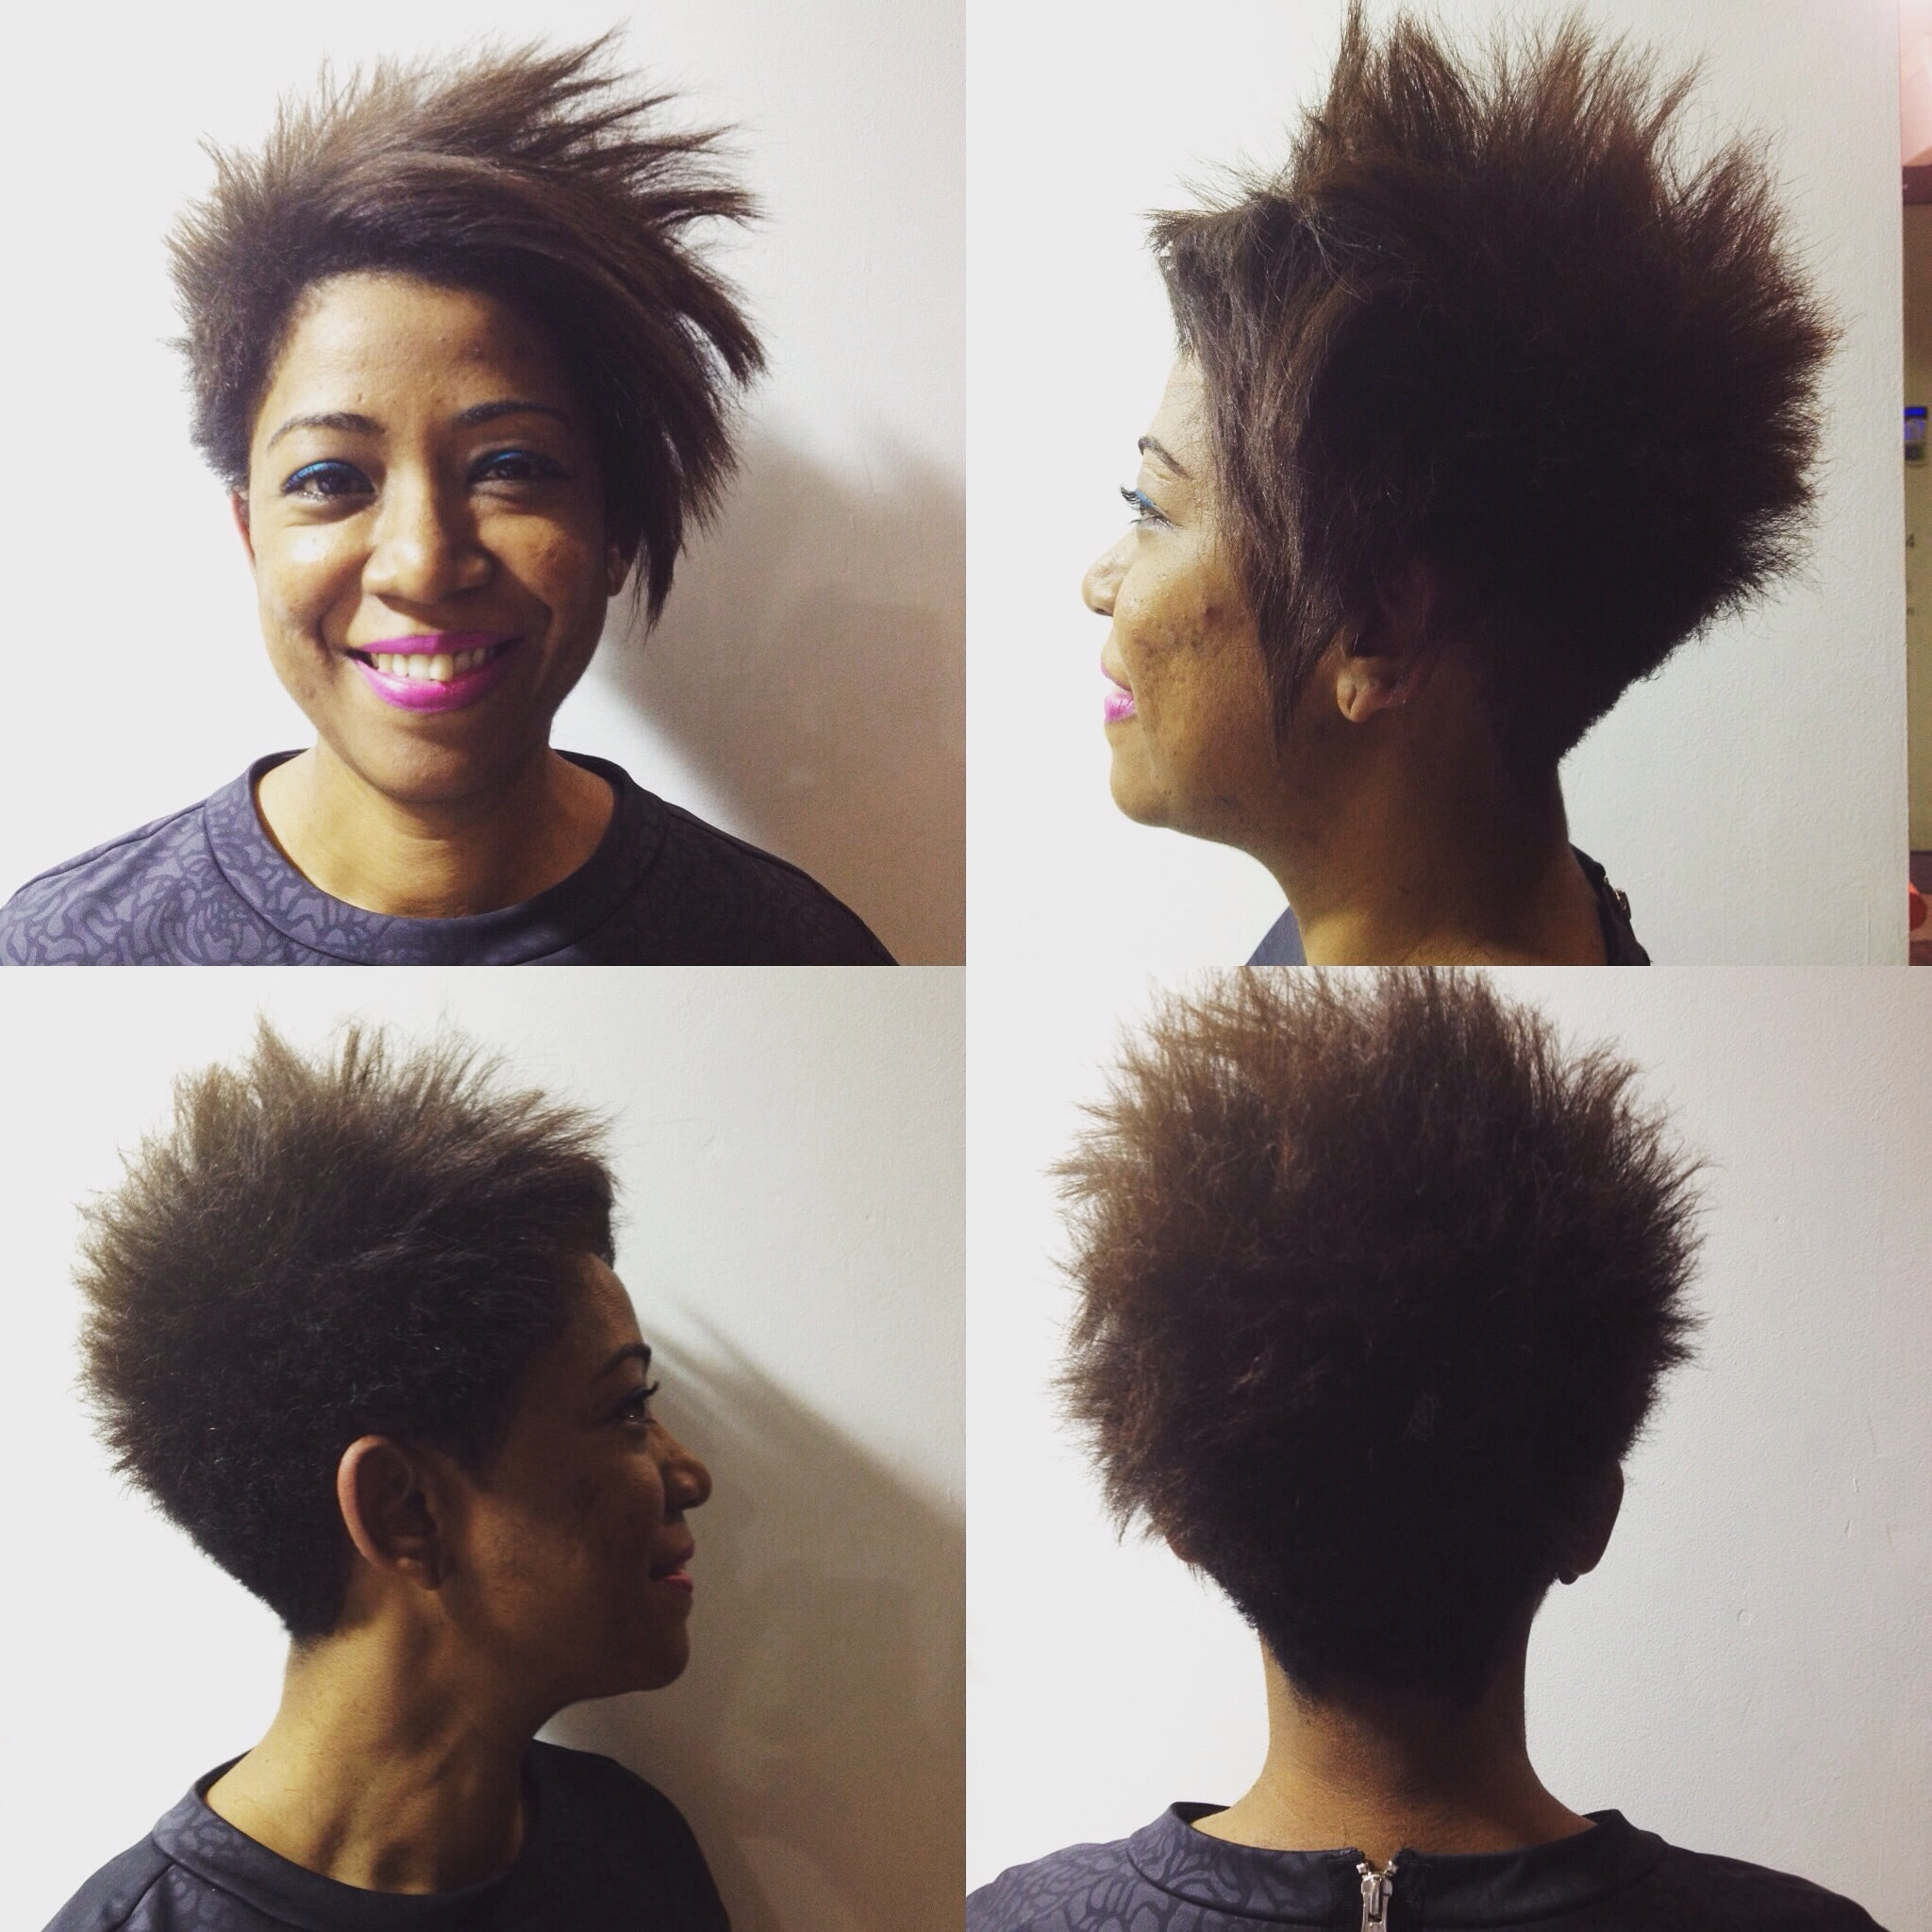 woman smiling with short haircut